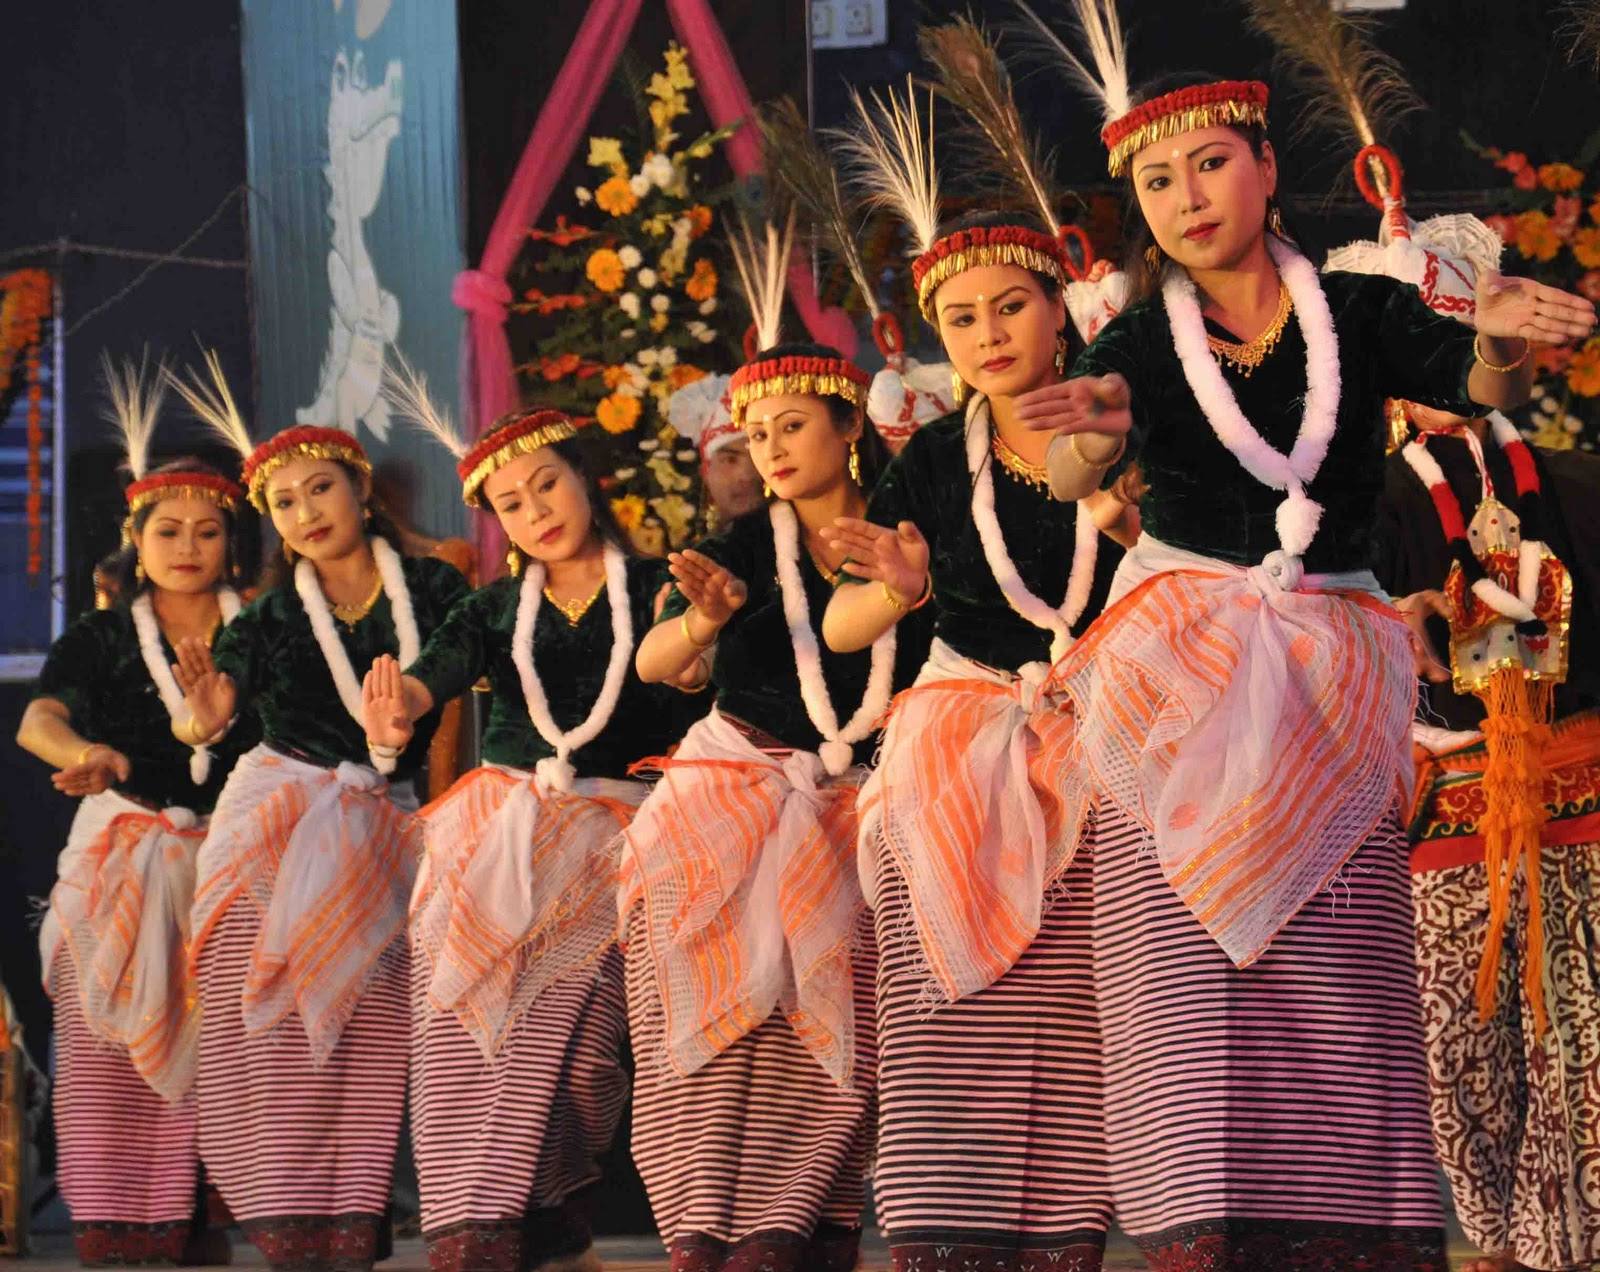 Laiharaoba Festival of manipur